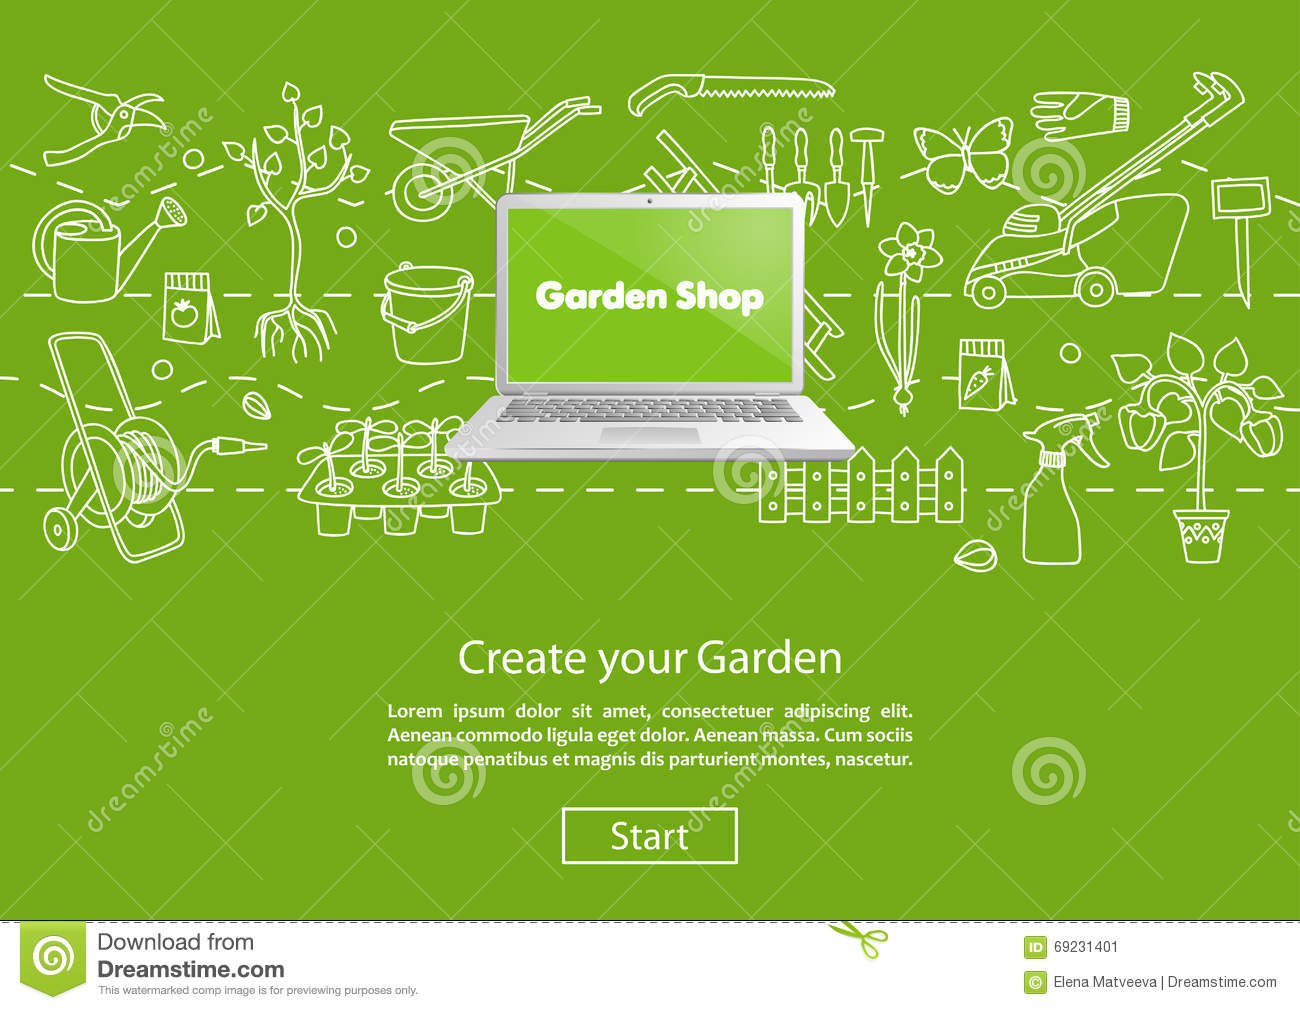 Create your garden green website template stock vector image 69231401 - Design your backyard online ...